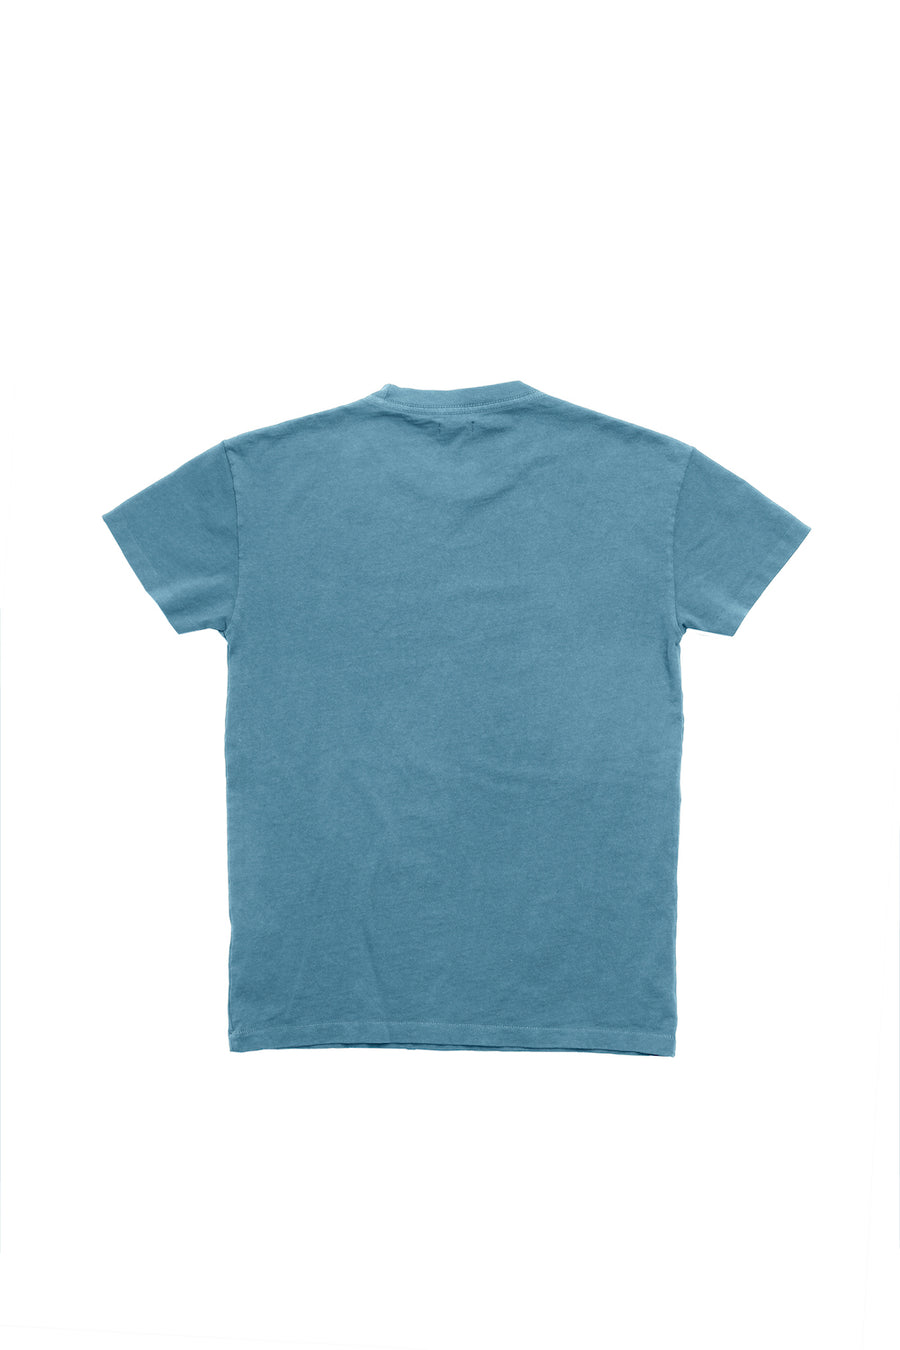 1992 T-Shirt - Light Blue